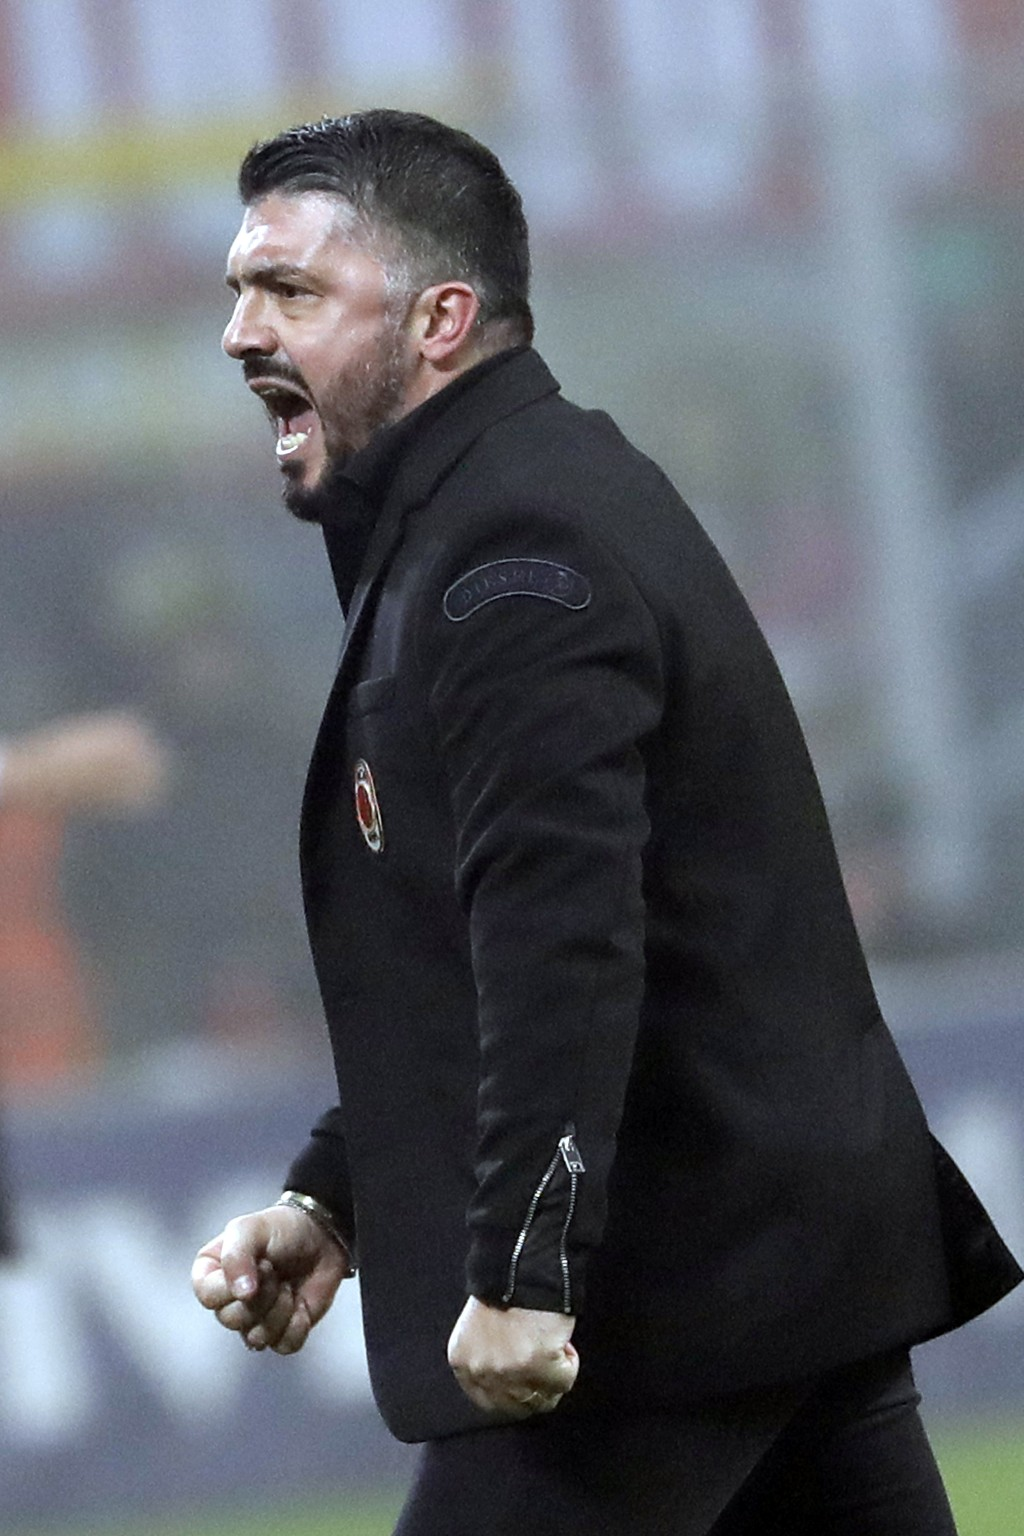 FILE - In this Jan. 28, 2018 file photo, AC Milan coach Gennaro Gattuso celebrates a 2-1 win at the end of a Serie A soccer match between AC Milan and